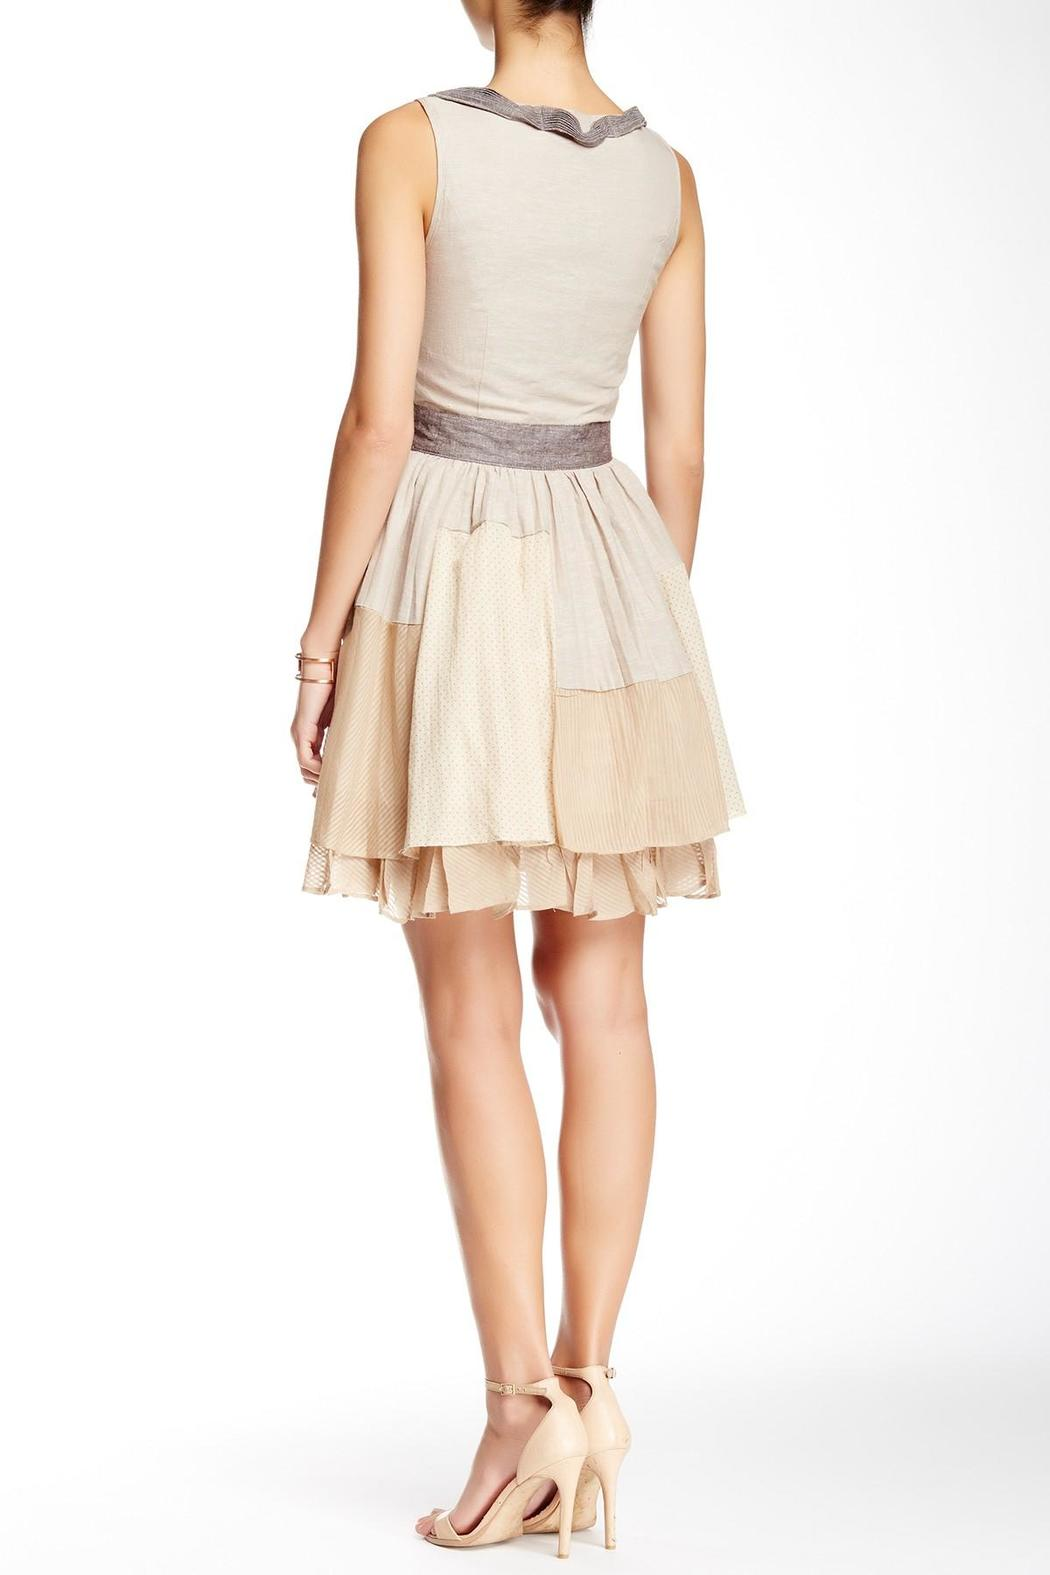 Ryu Beige Patched Dress - Front Full Image